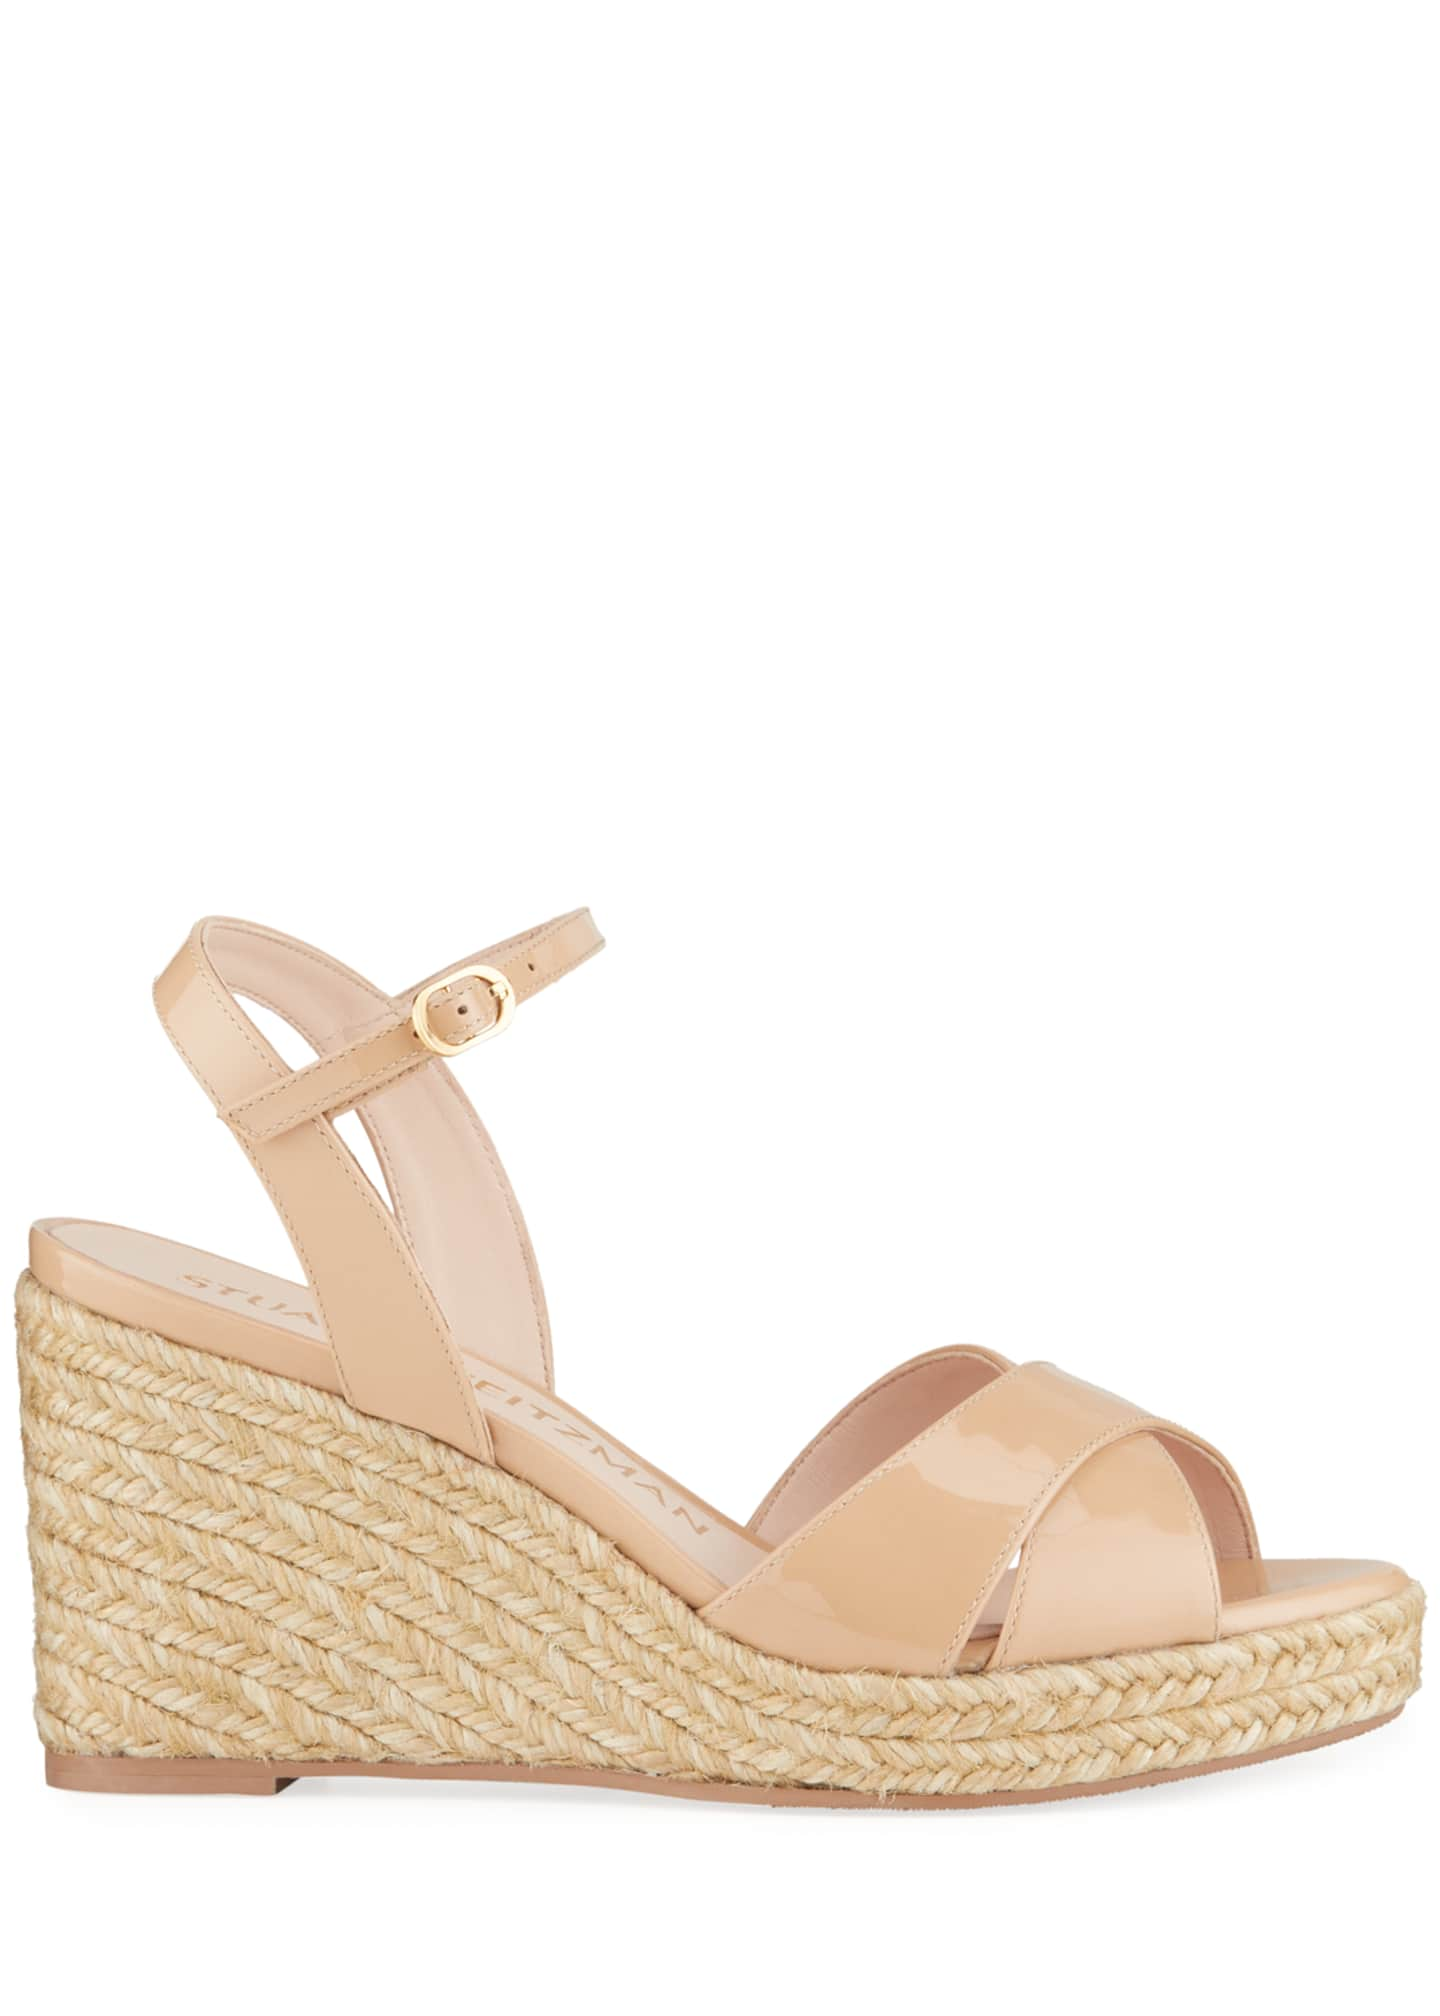 Image 2 of 5: Rosemarie Patent Leather Wedge Espadrille Sandals